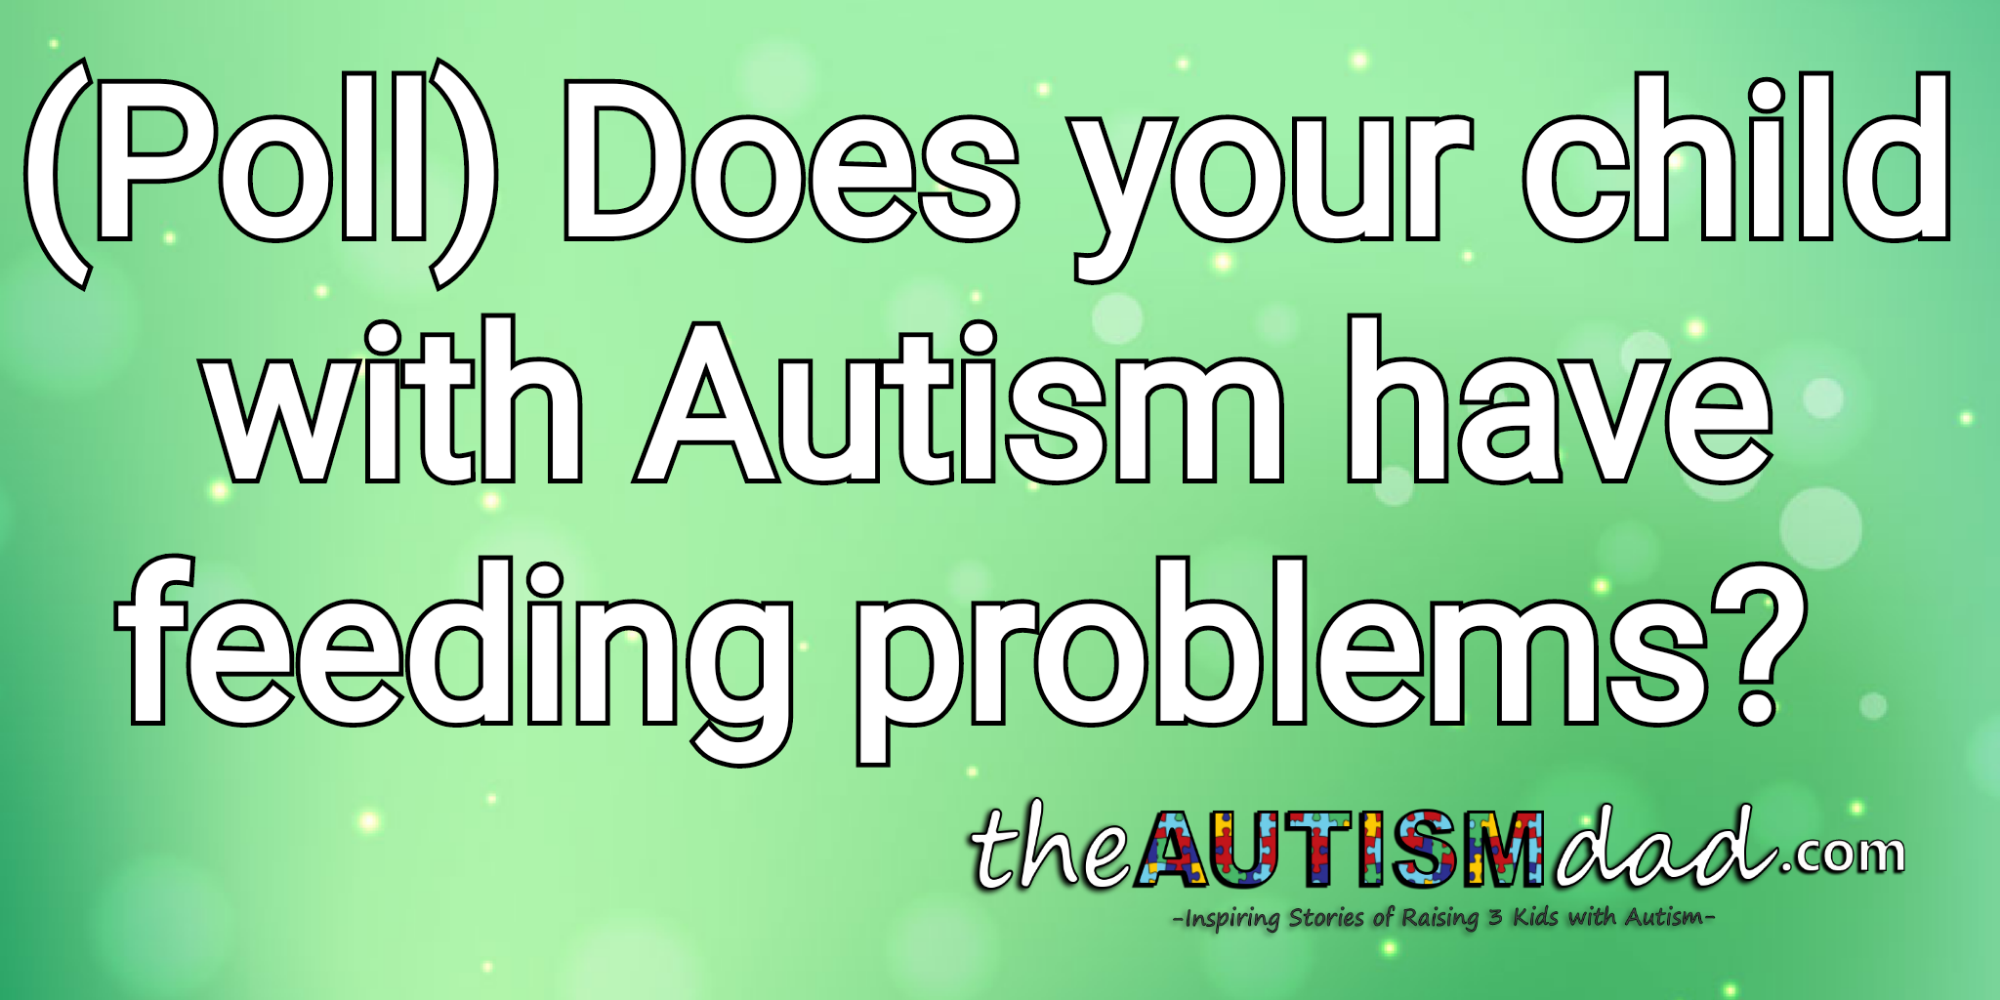 (Poll) Does your child with #Autism have feeding problems?